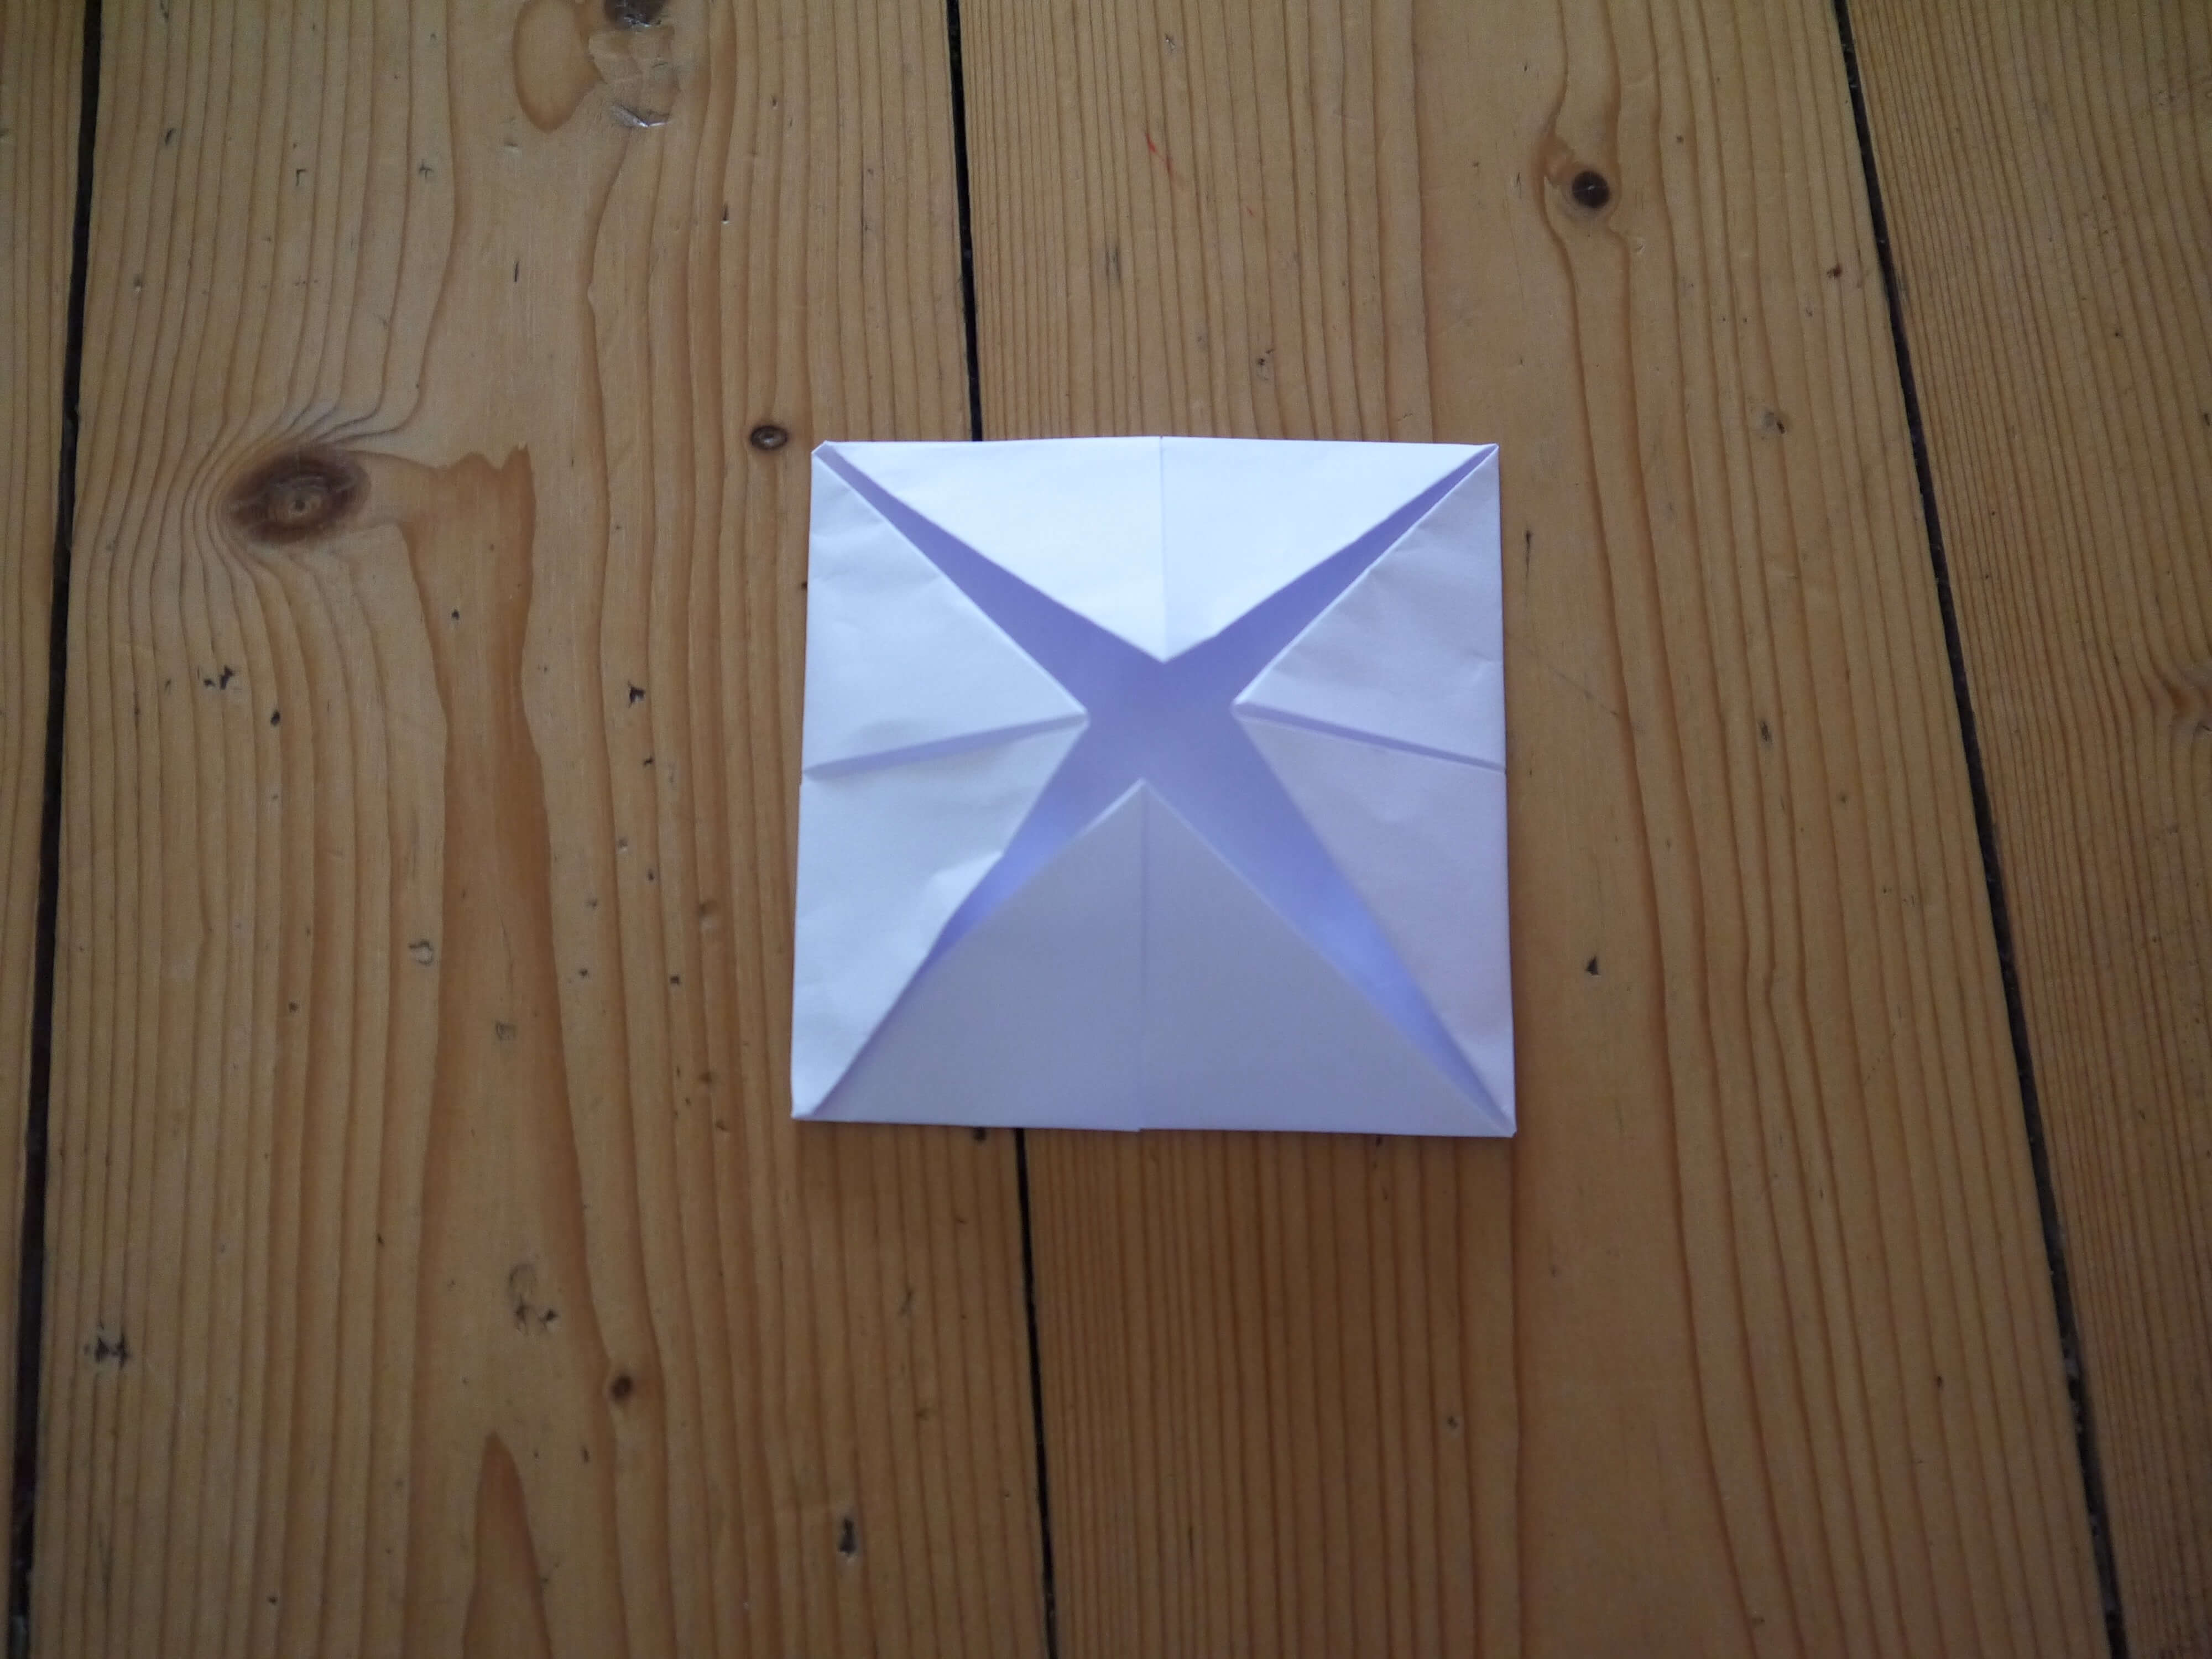 Second folded corners